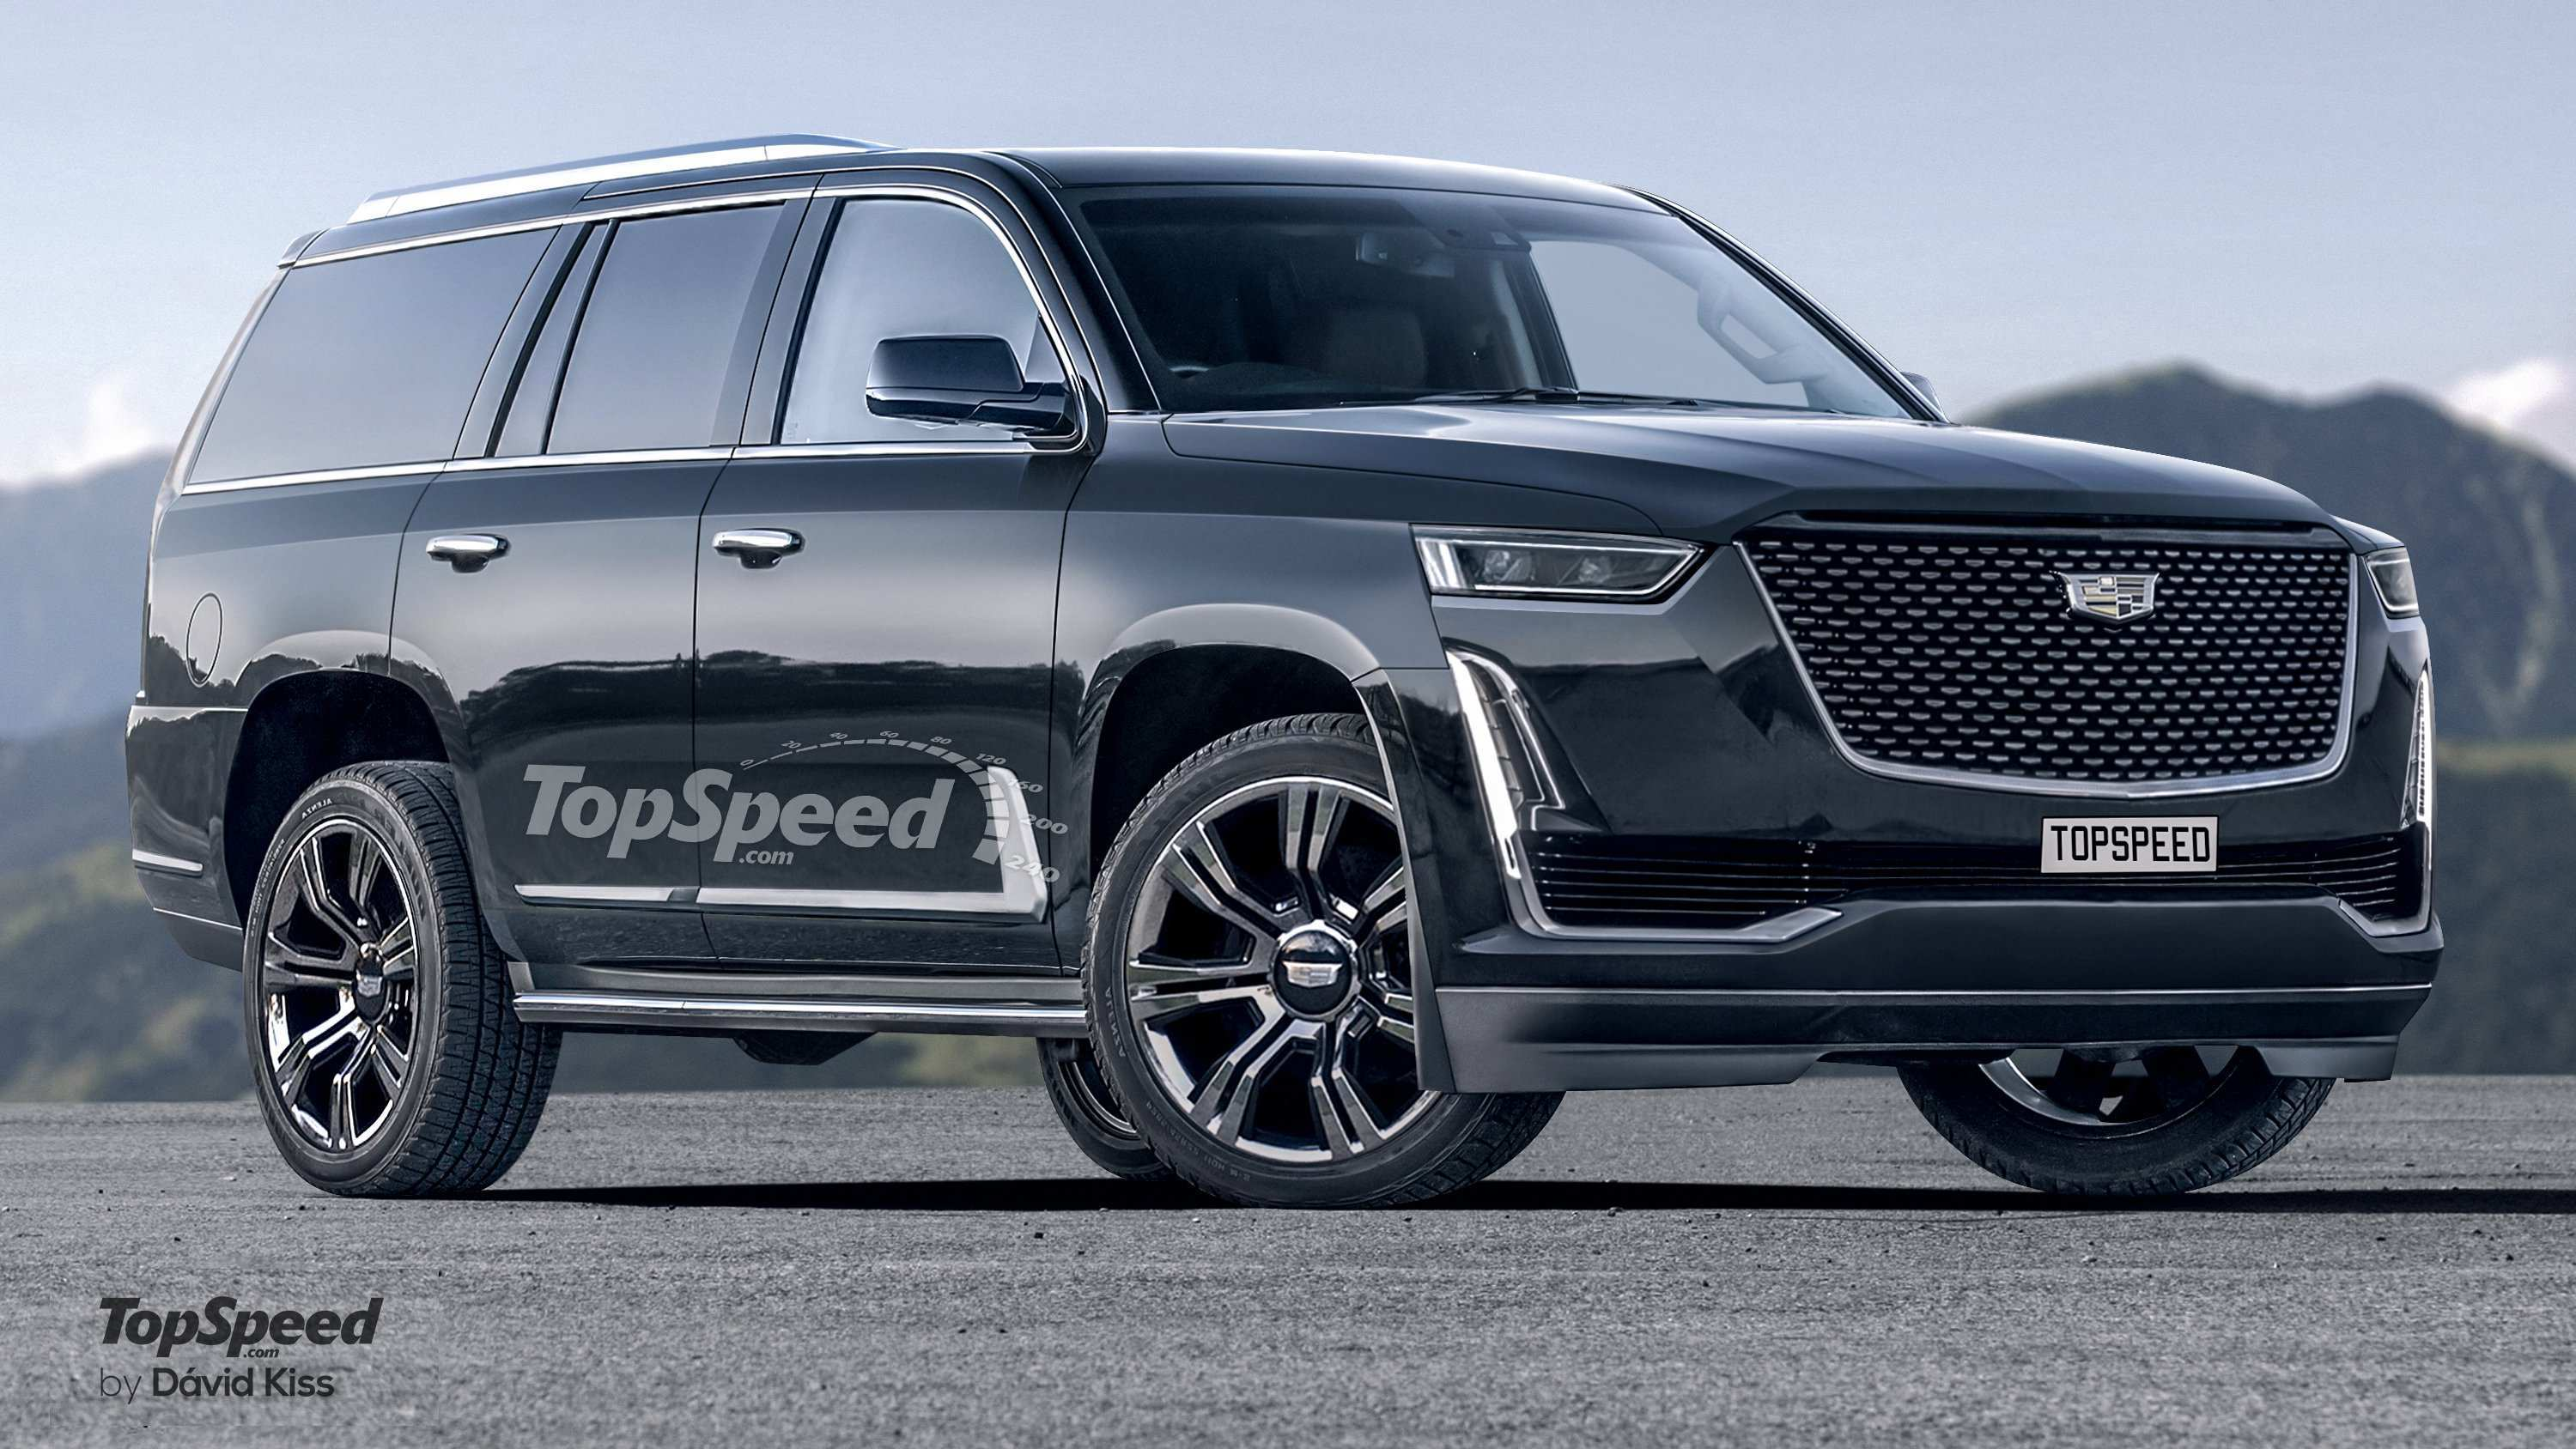 56 Concept of 2020 Cadillac Escalade Specs and Review for 2020 Cadillac Escalade